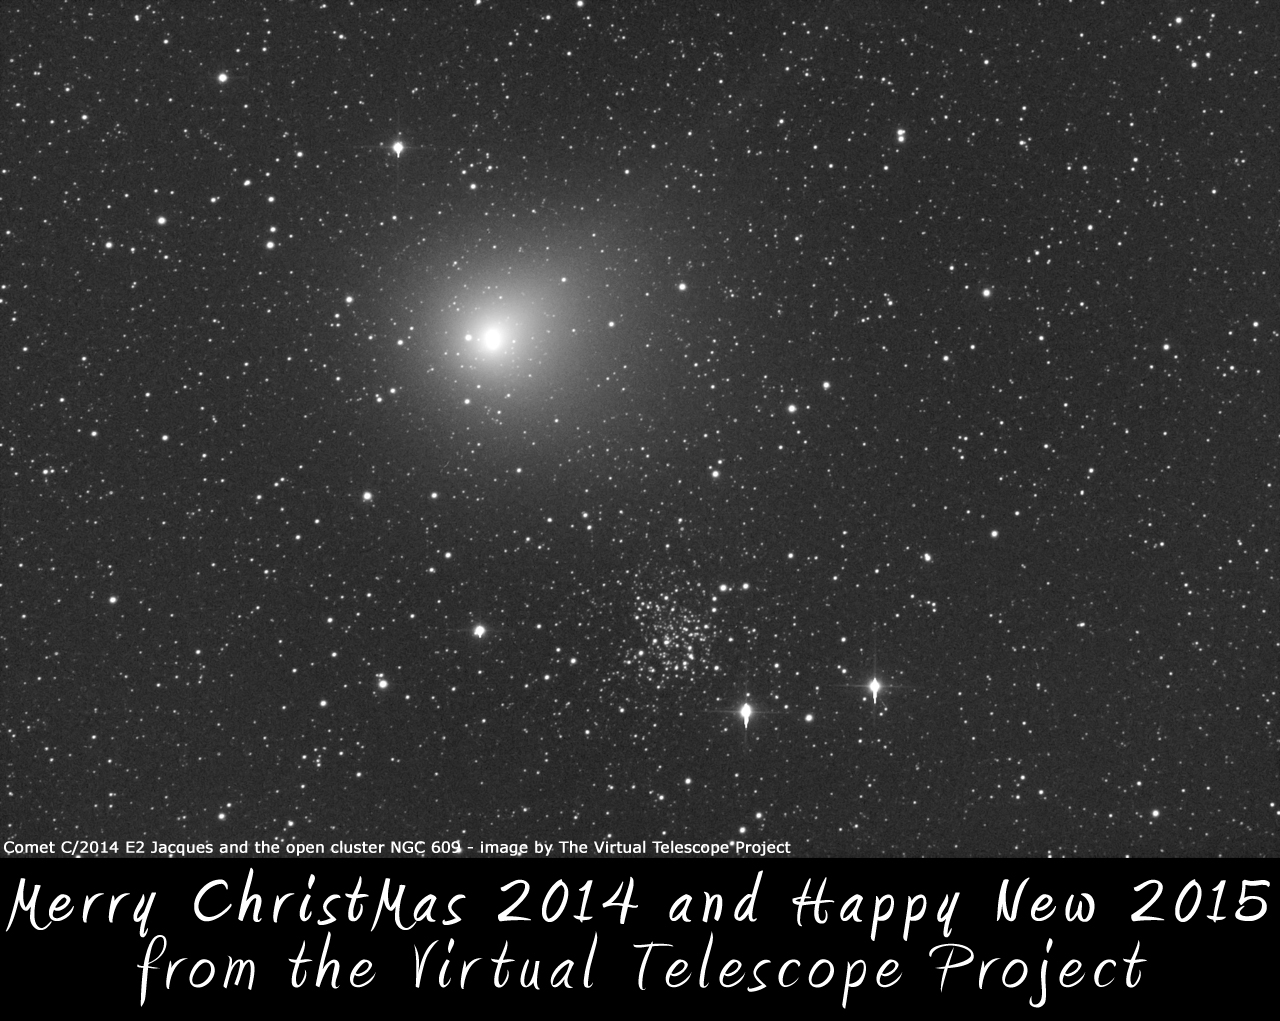 Merry Christmas 2014 - The Virtual Telescope Project 2.0